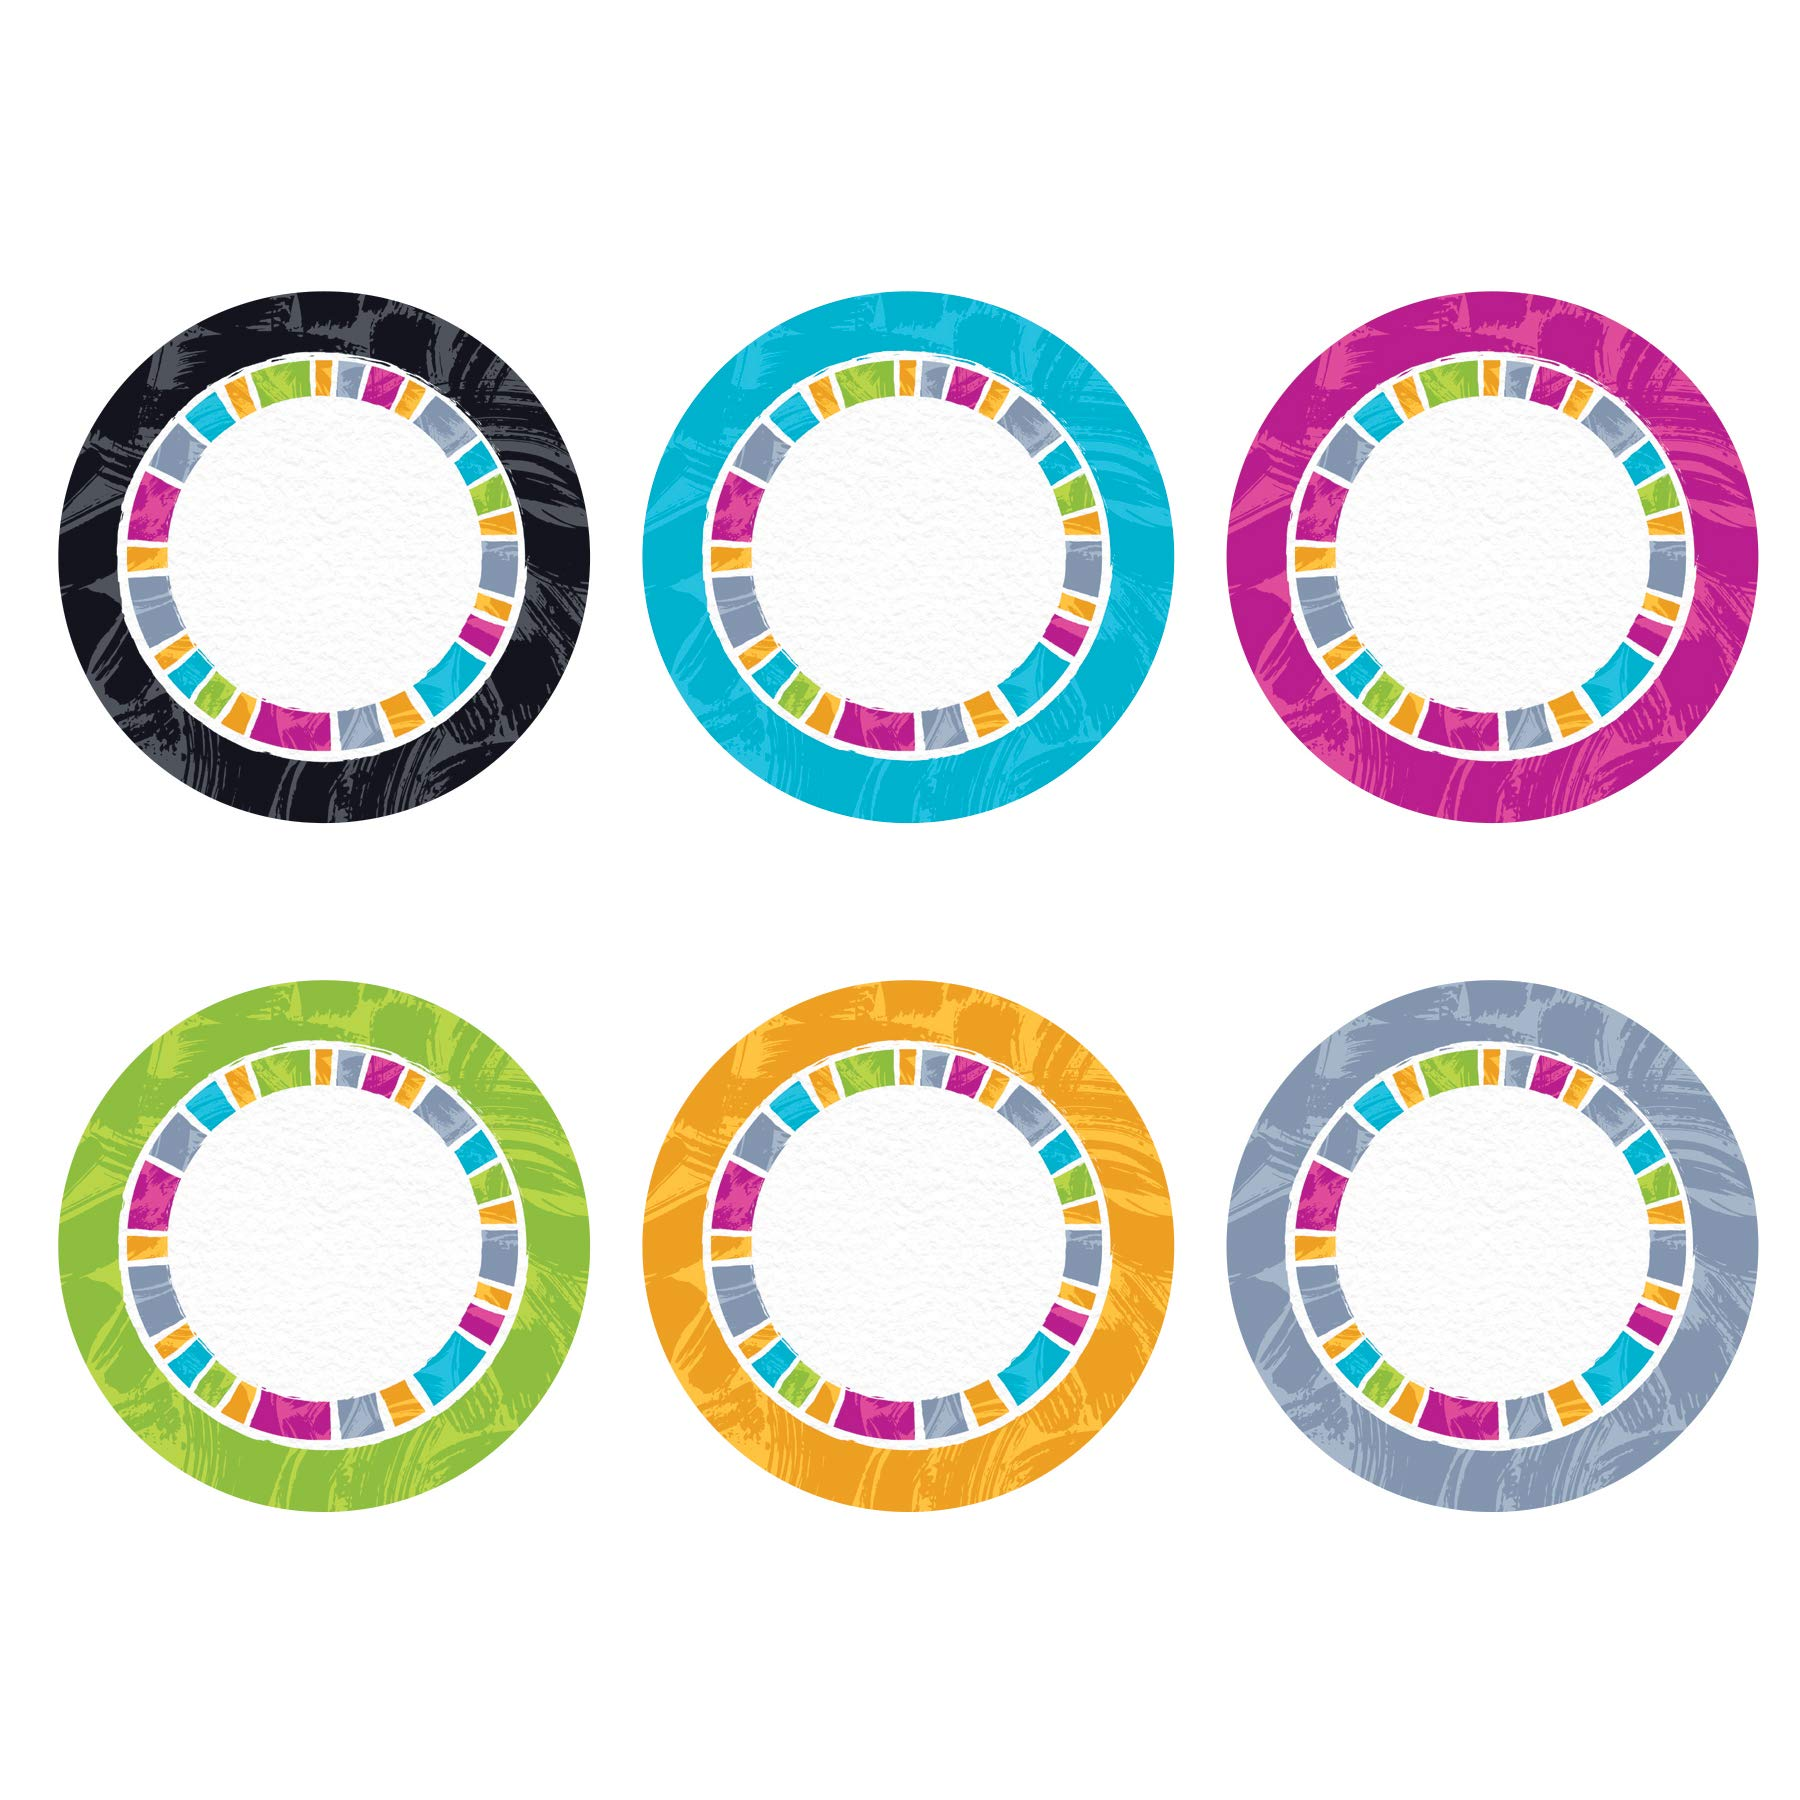 Color Harmony Circles Classic Accents Variety Pack, 36 Count by Trend Enterprises Inc